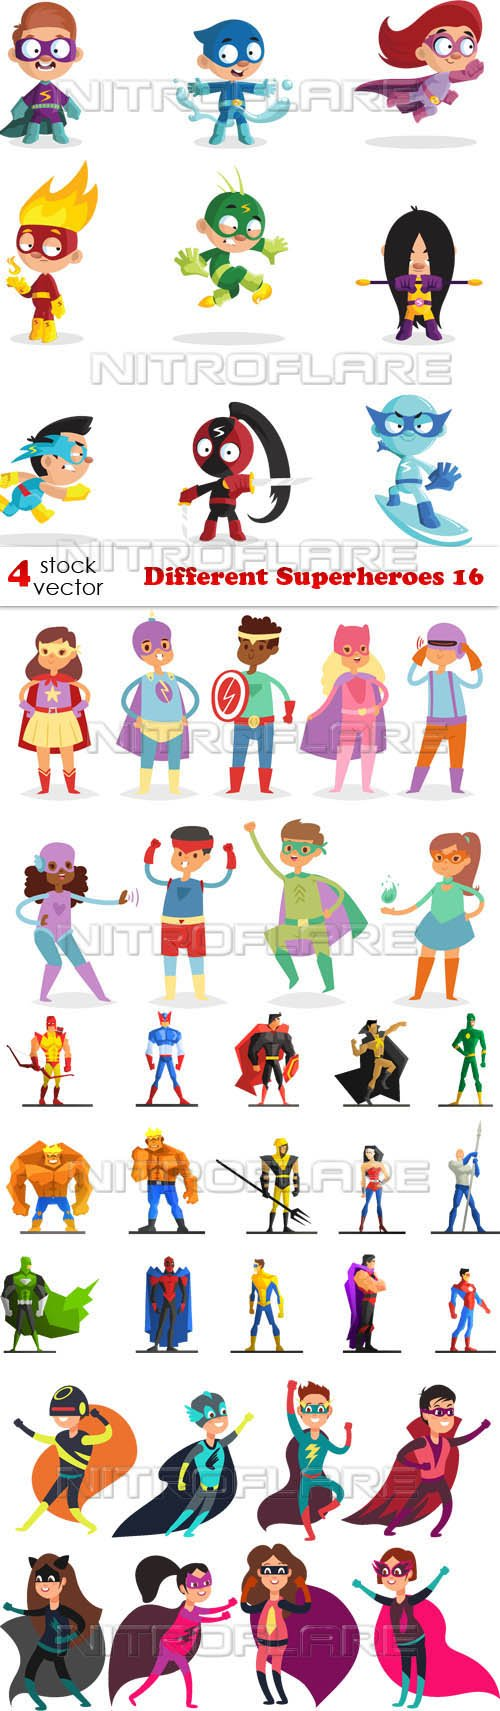 Vectors - Different Superheroes 16